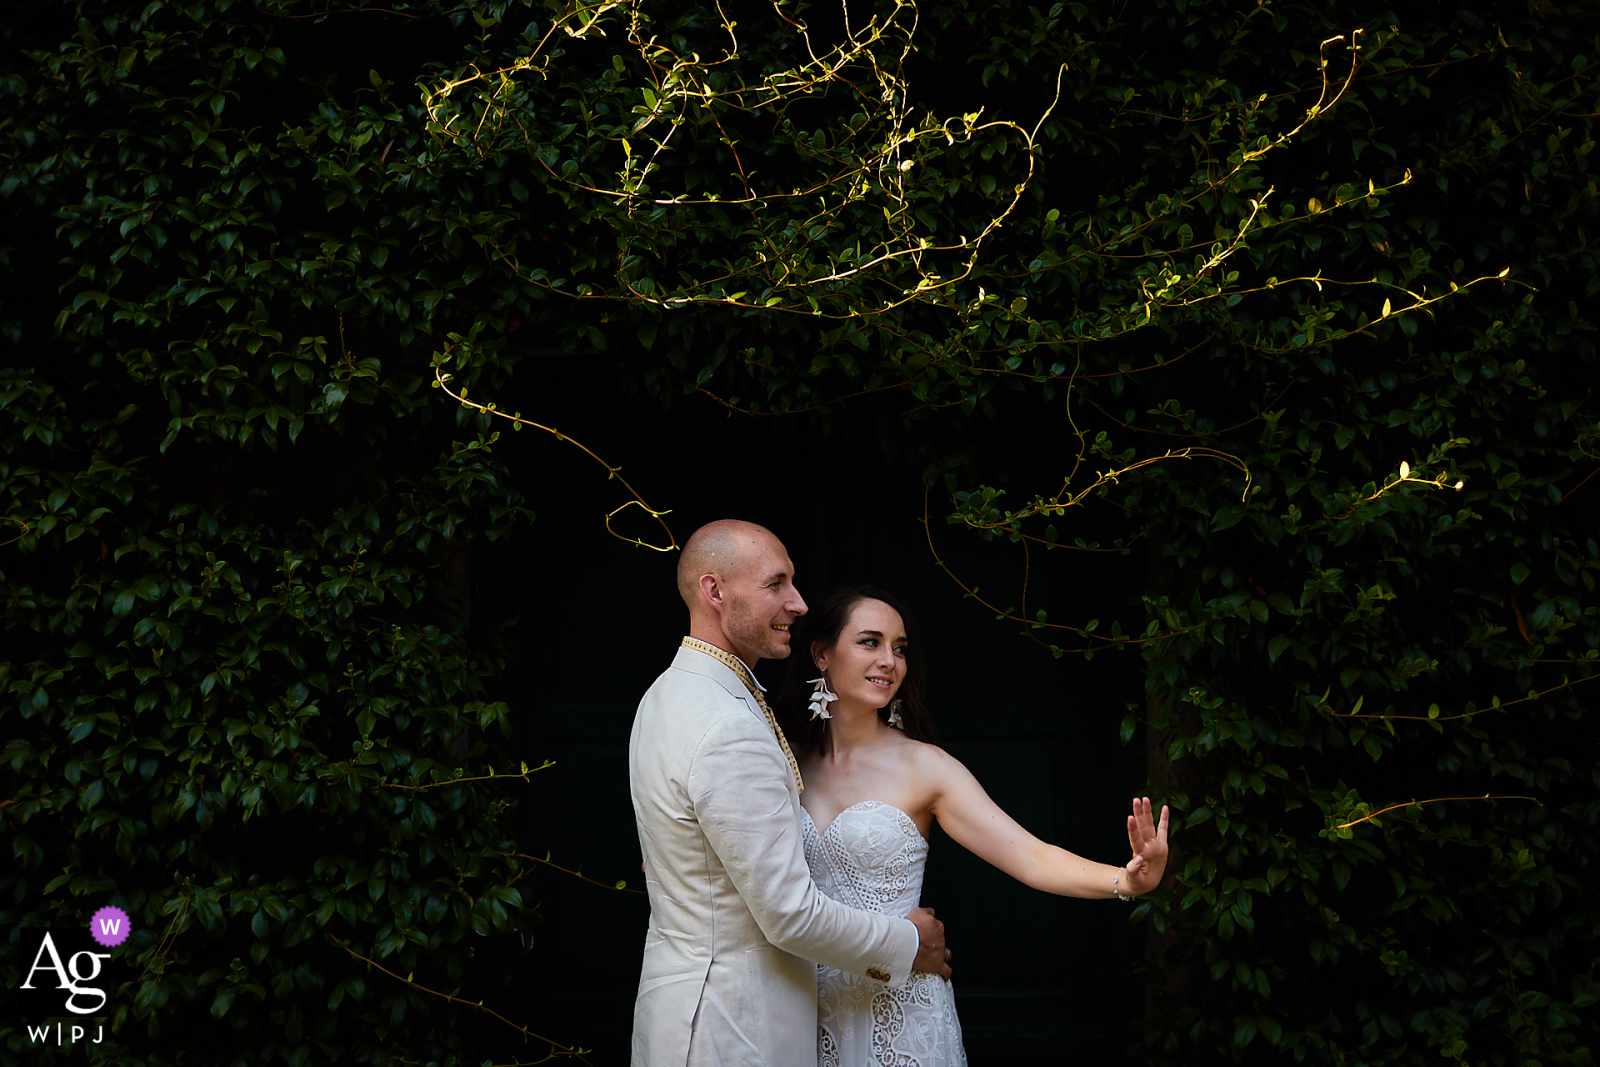 Certaldo, Tuscany creative and natural wedding couple portrait while showing off the brides ring